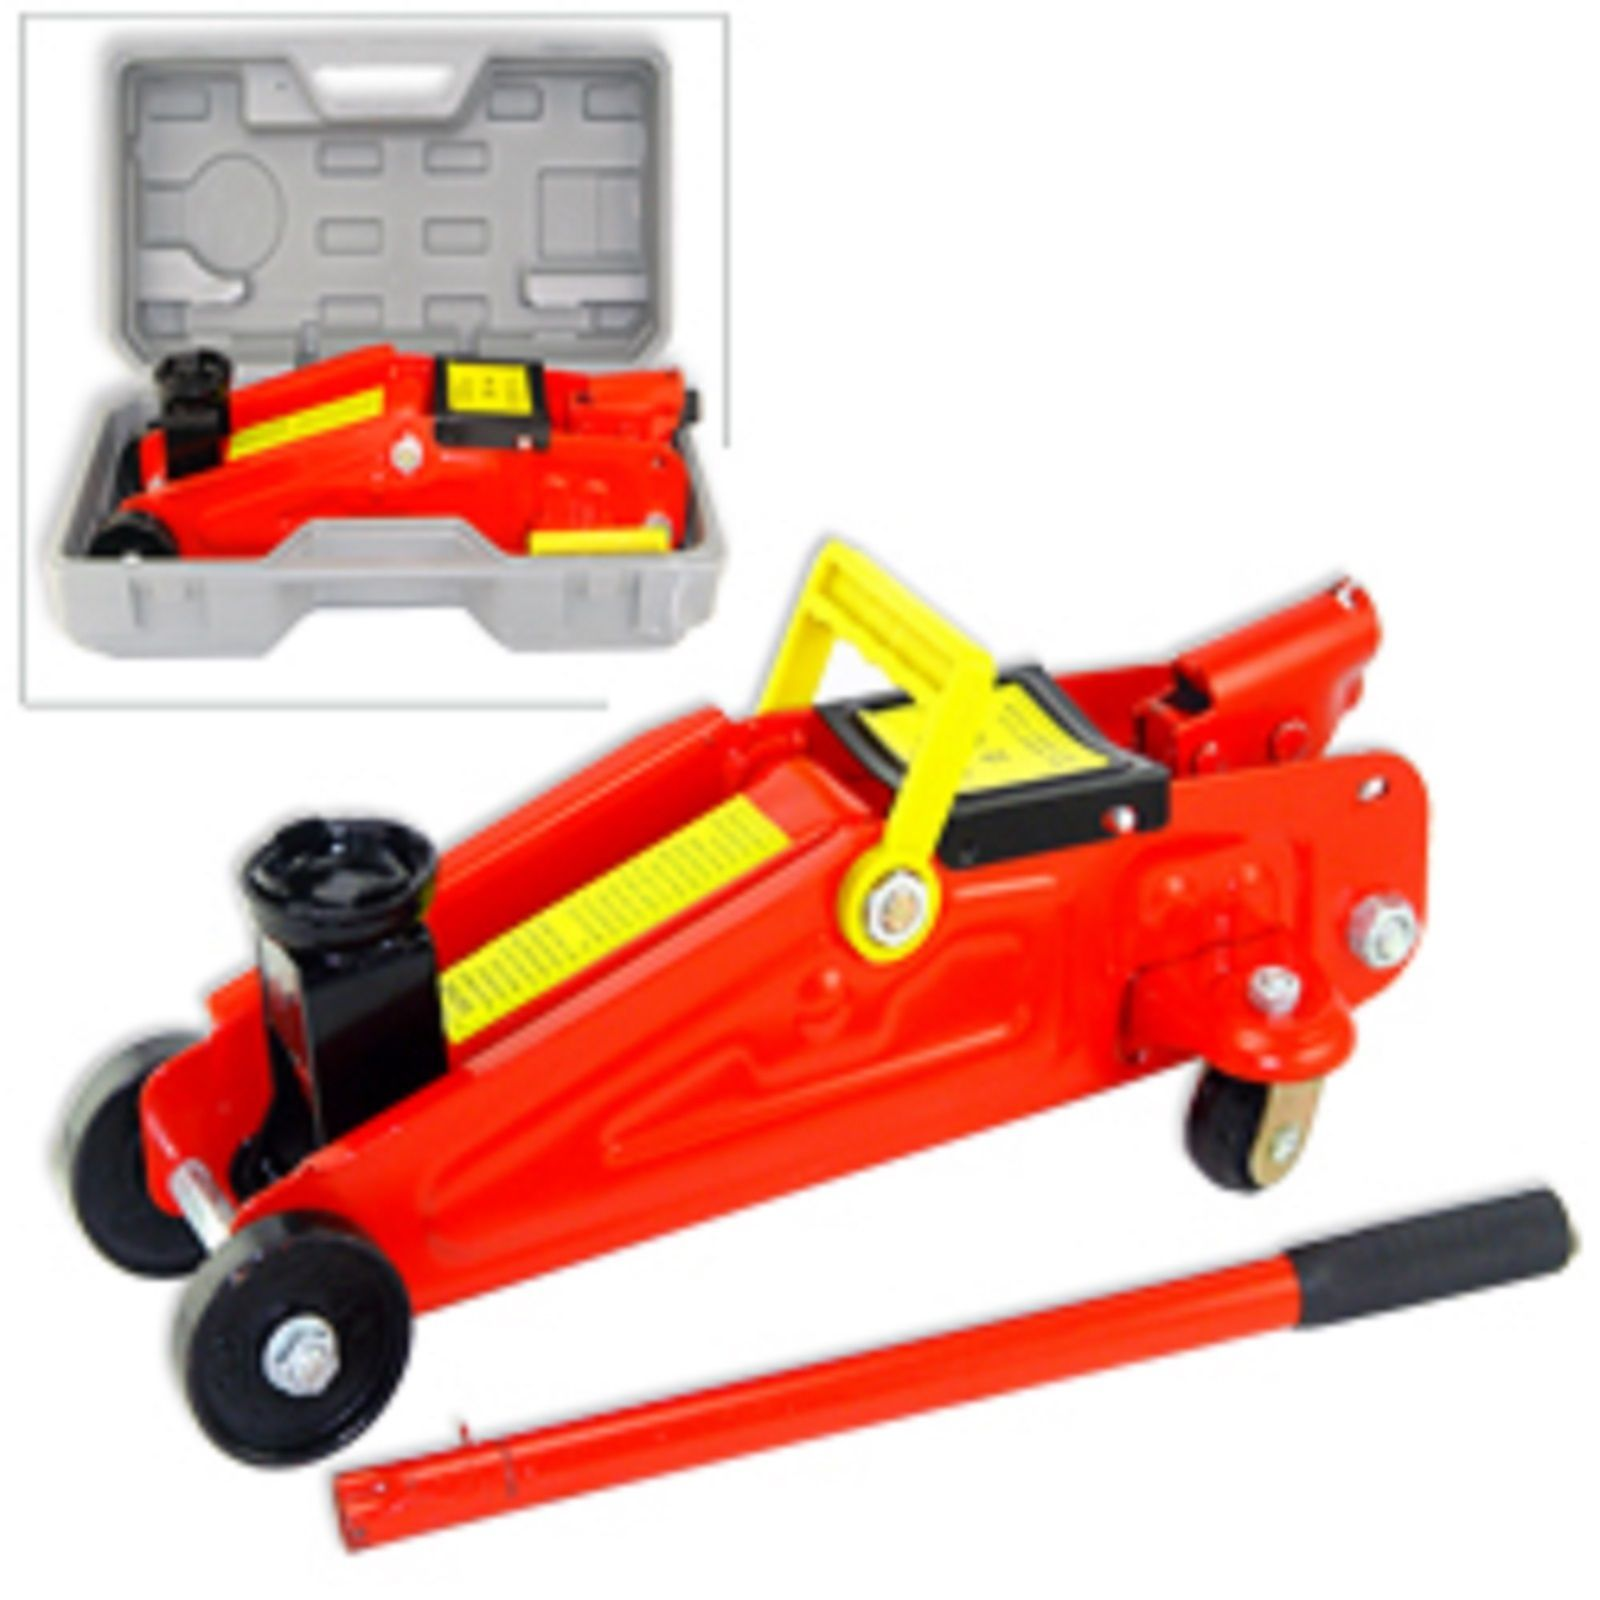 Brand 2 Ton Mini Floor Jack In A Blow Mold Case For